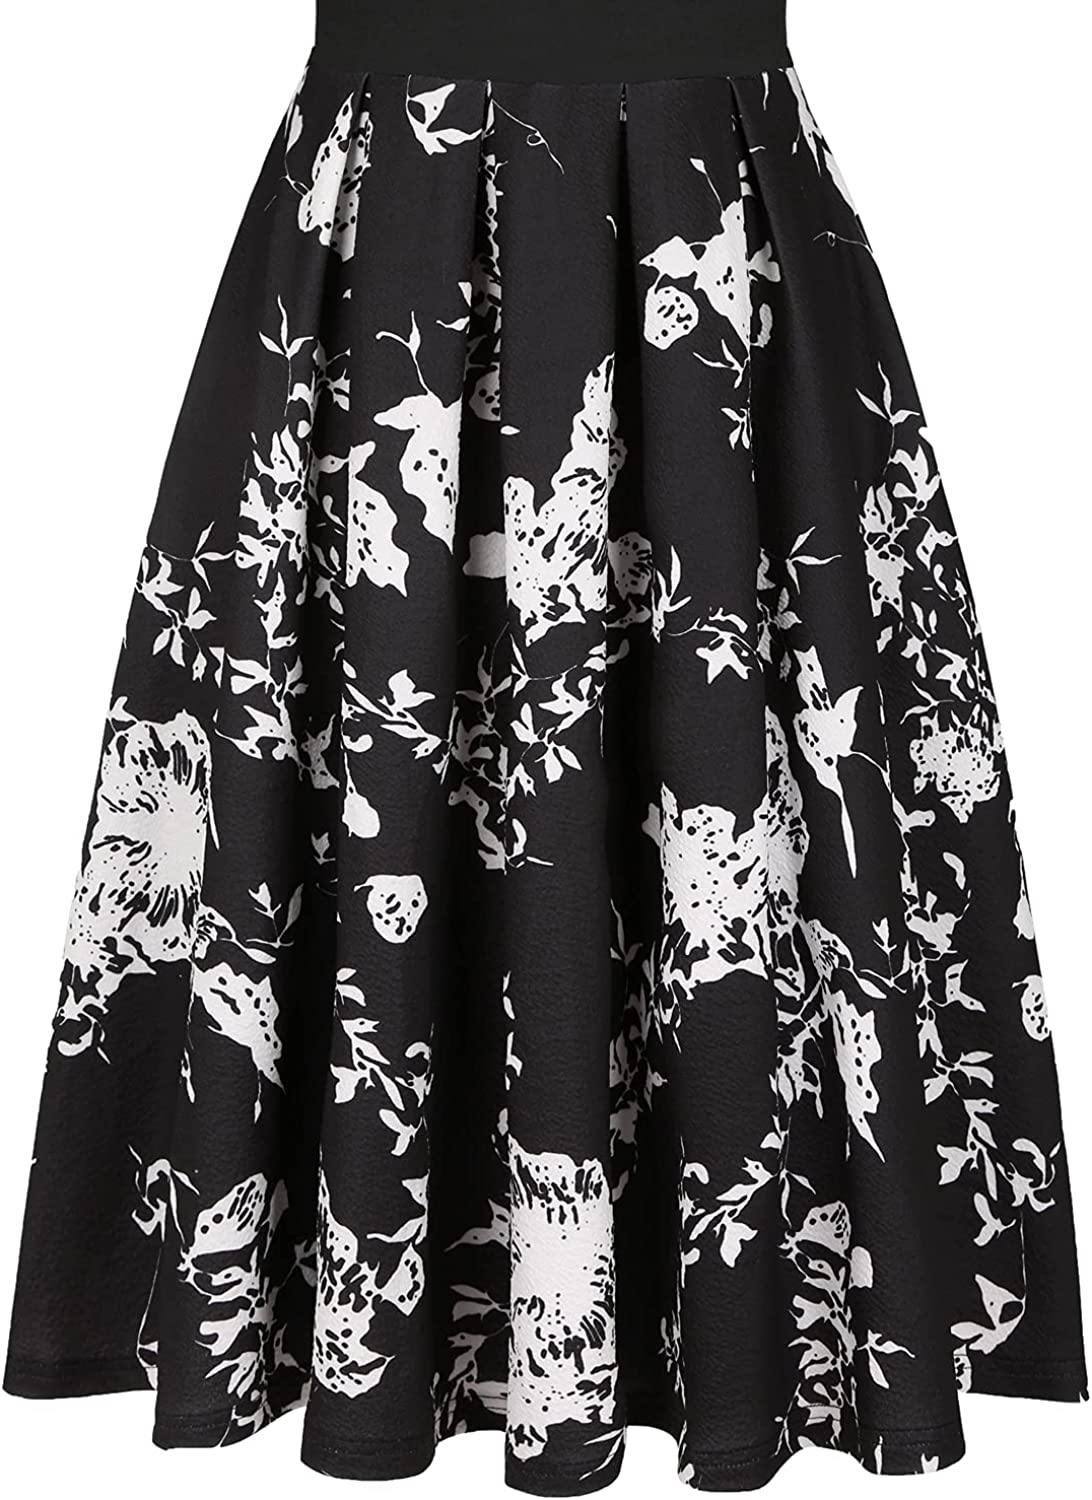 CHICCLOTH Women's Classic Retro Flower Dress Elegant 50 s Fit and Flare Cute V Neck 3/4 Sleeve Casual Fall Homecoming Wedding Guest Dresses with Pockets(Black M)